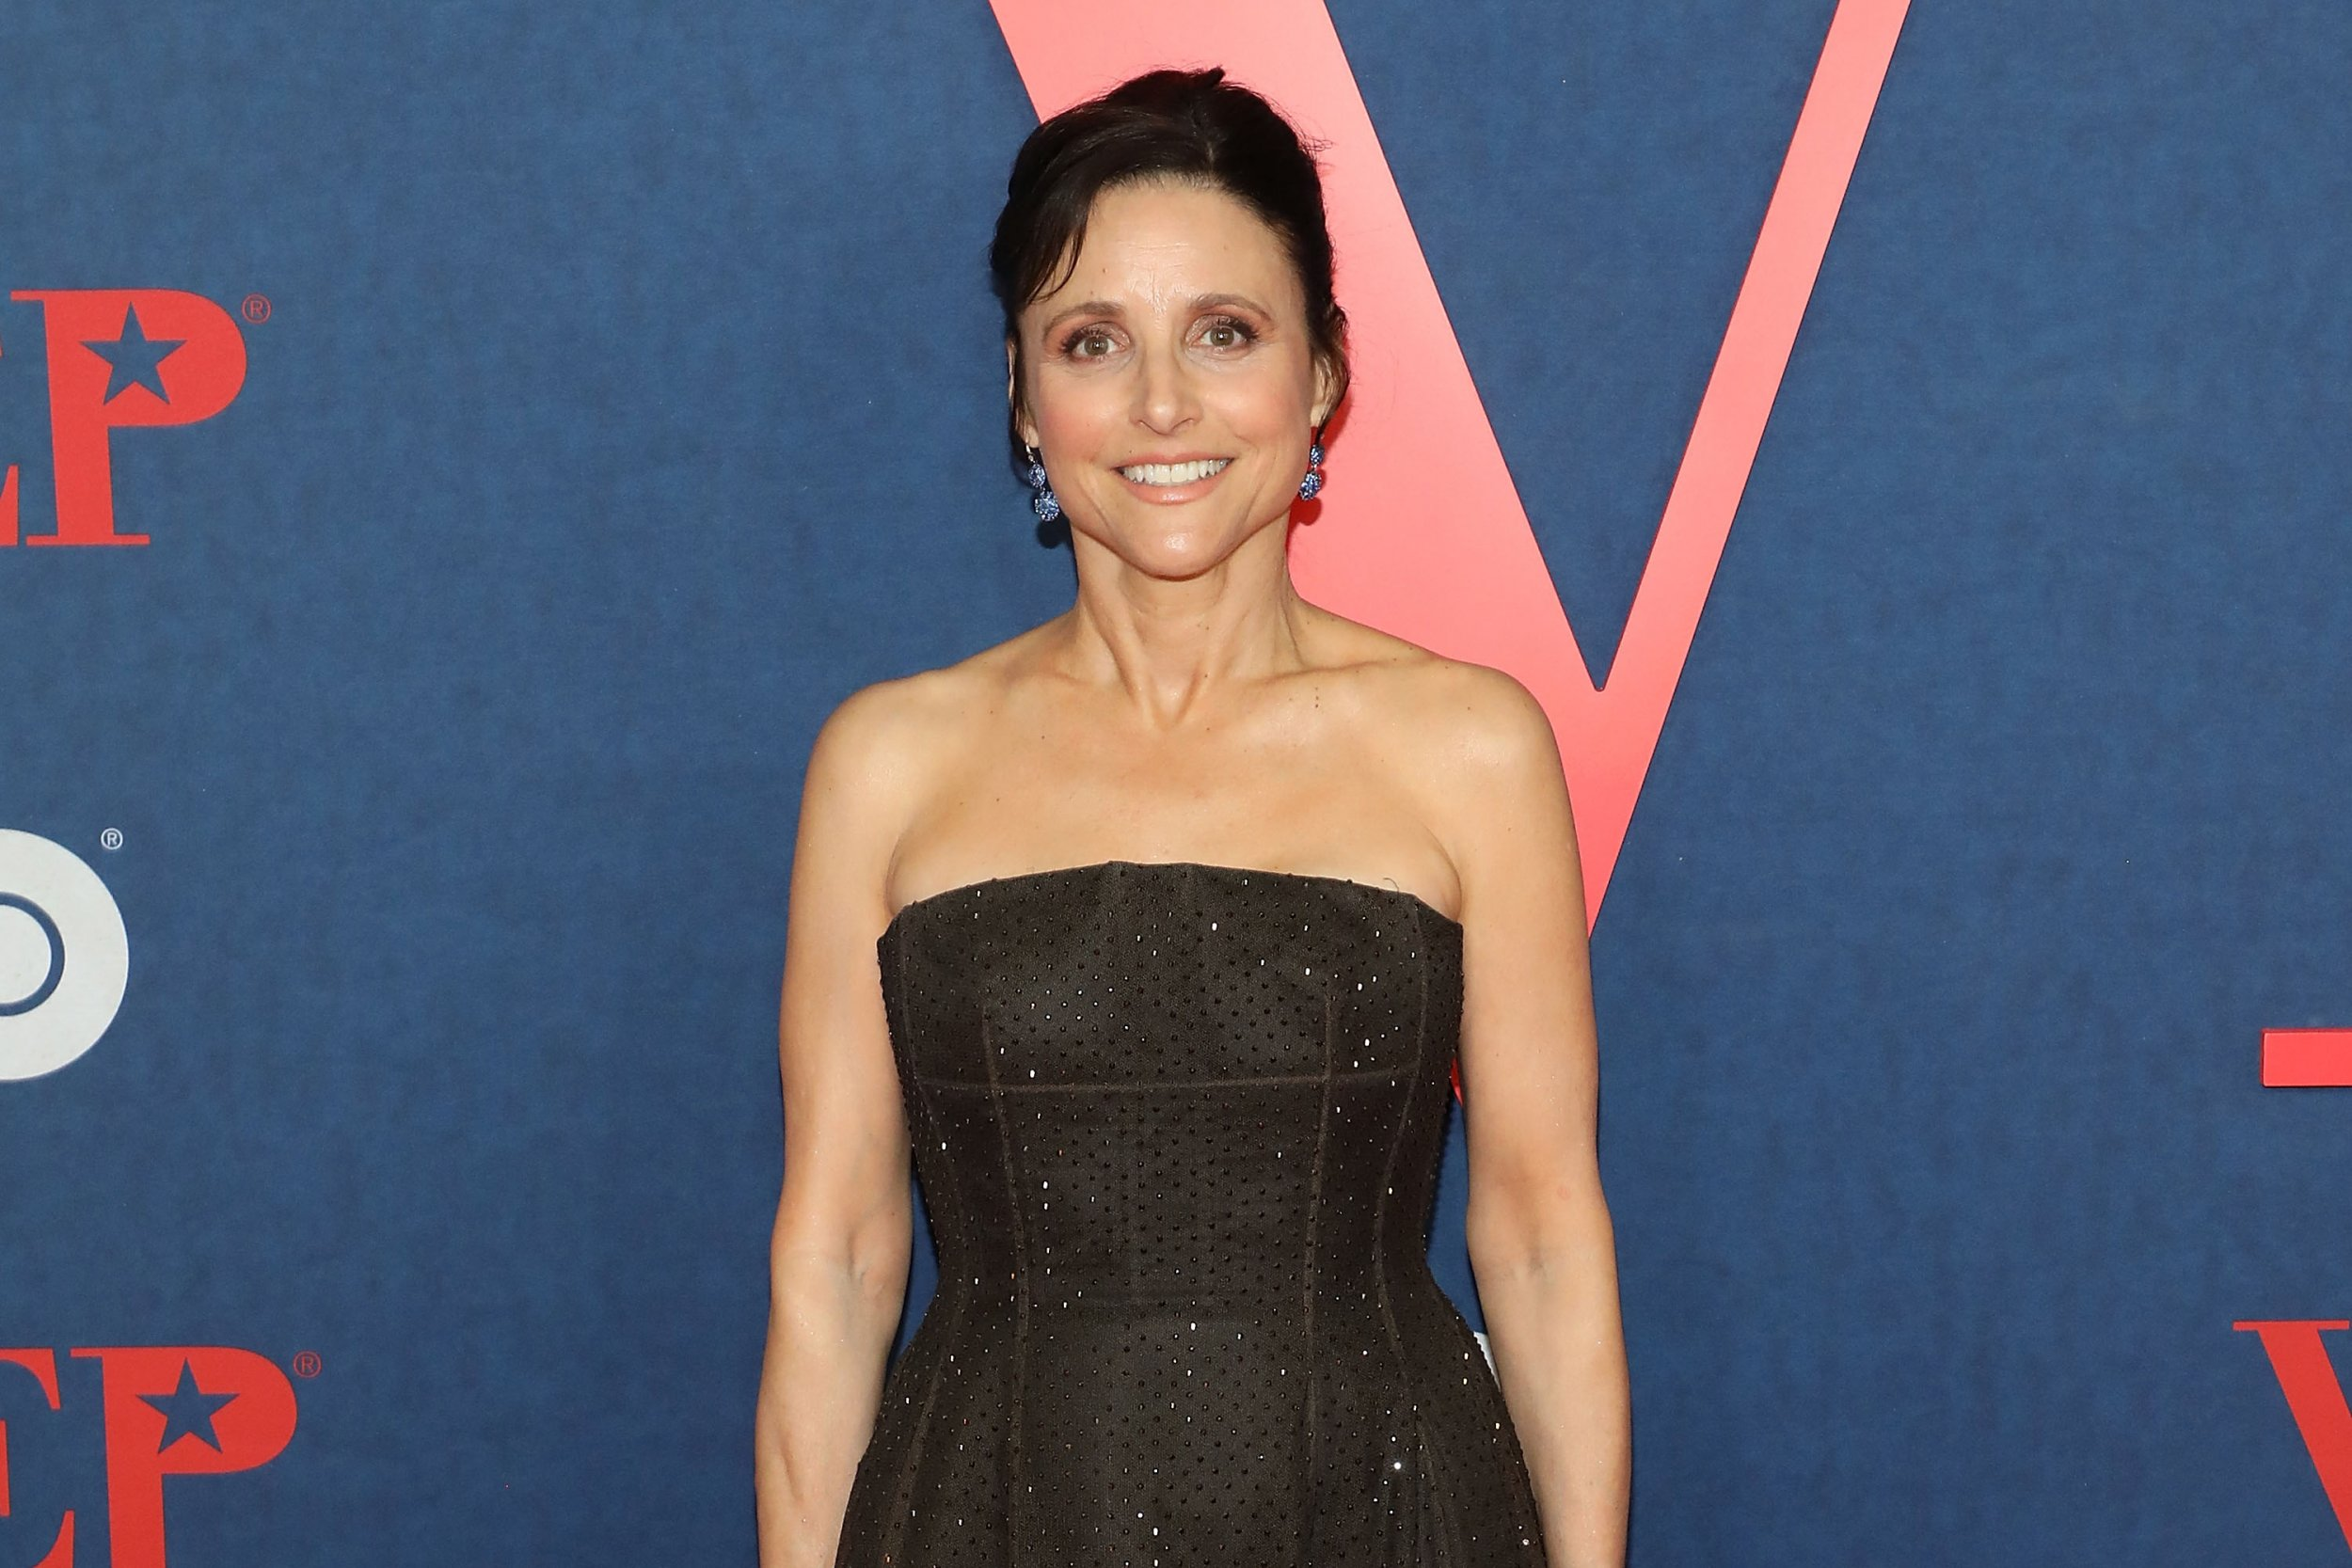 Julia Louis-Dreyfus on 'Saturday Night Live' Experience: 'It Was So Misogynistic and Not Female-Friendly Whatsoever'